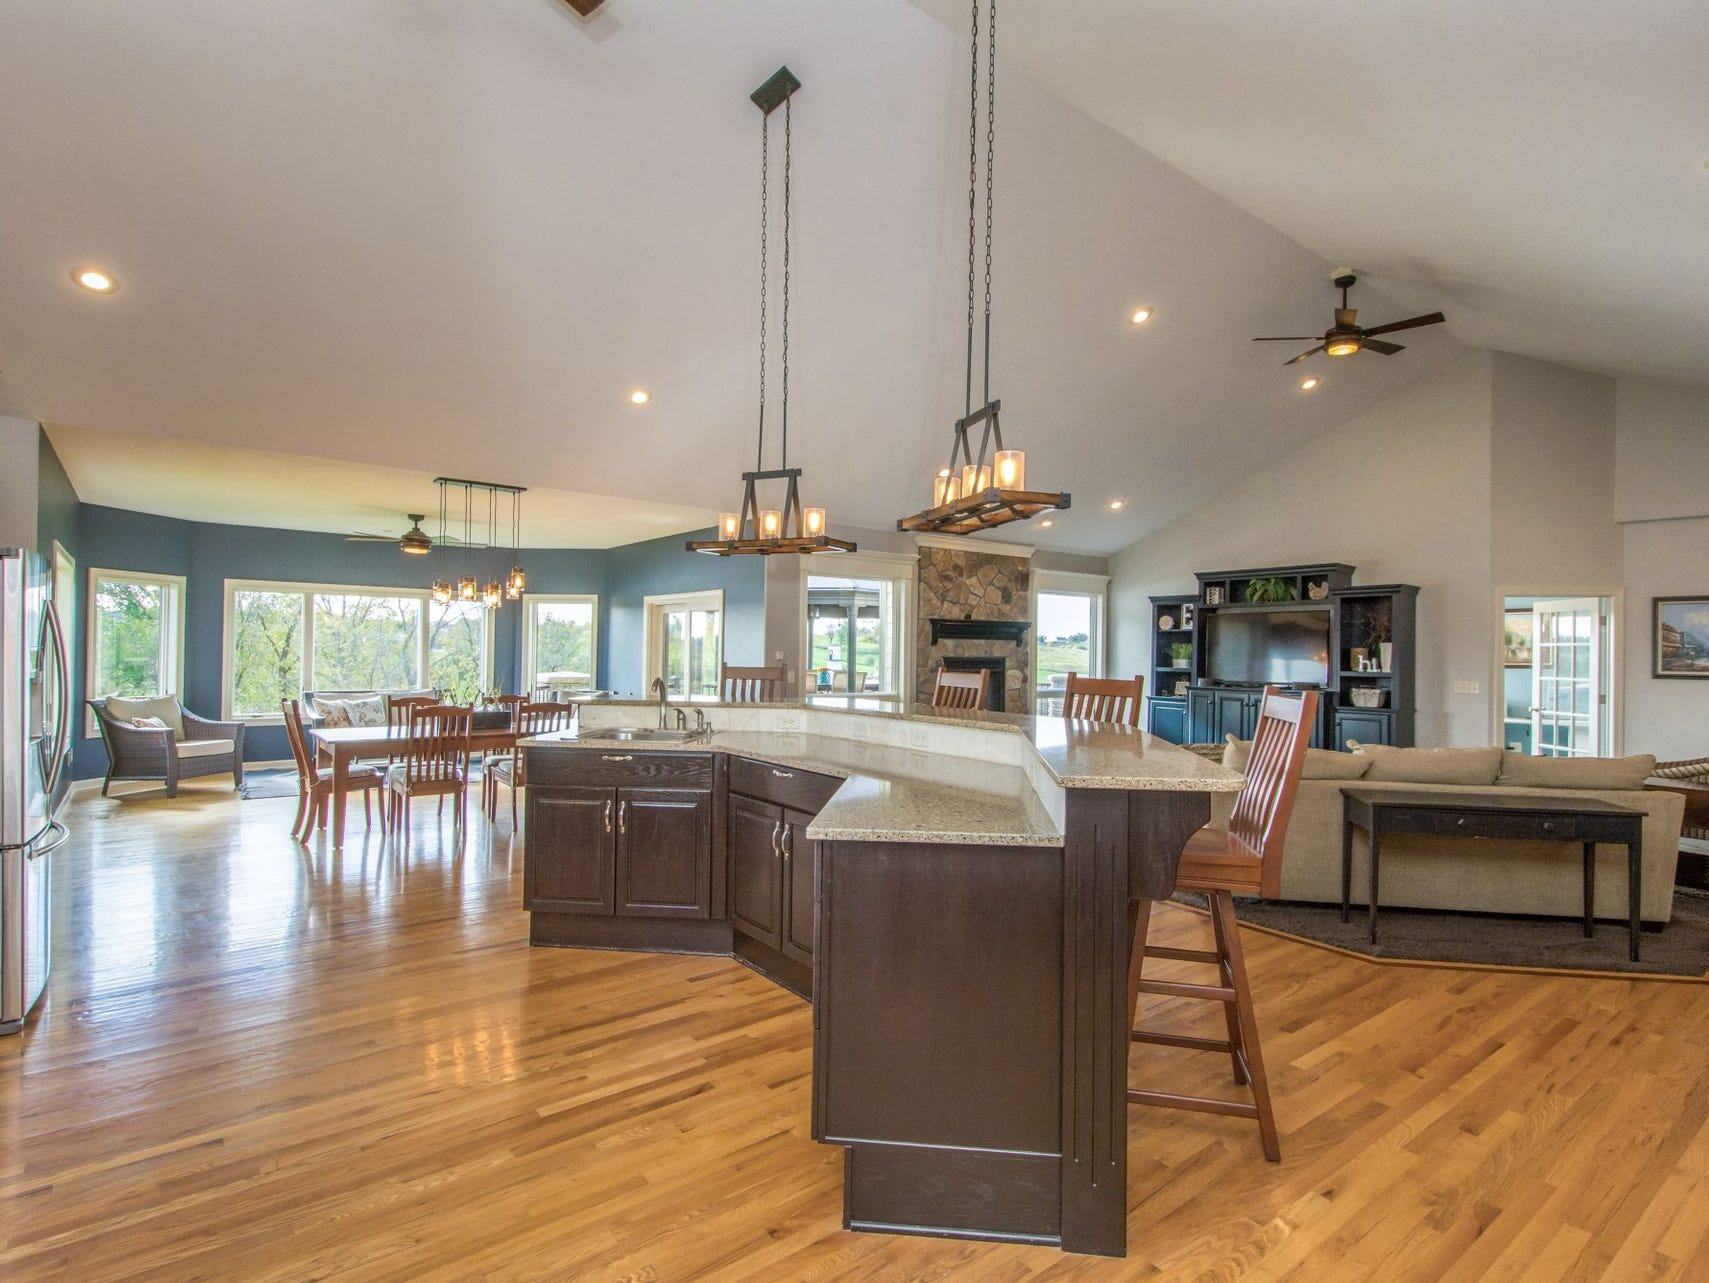 This massive home has it all, including a theater room, craft room, sunroom, exercise room and second full kitchen and bar.